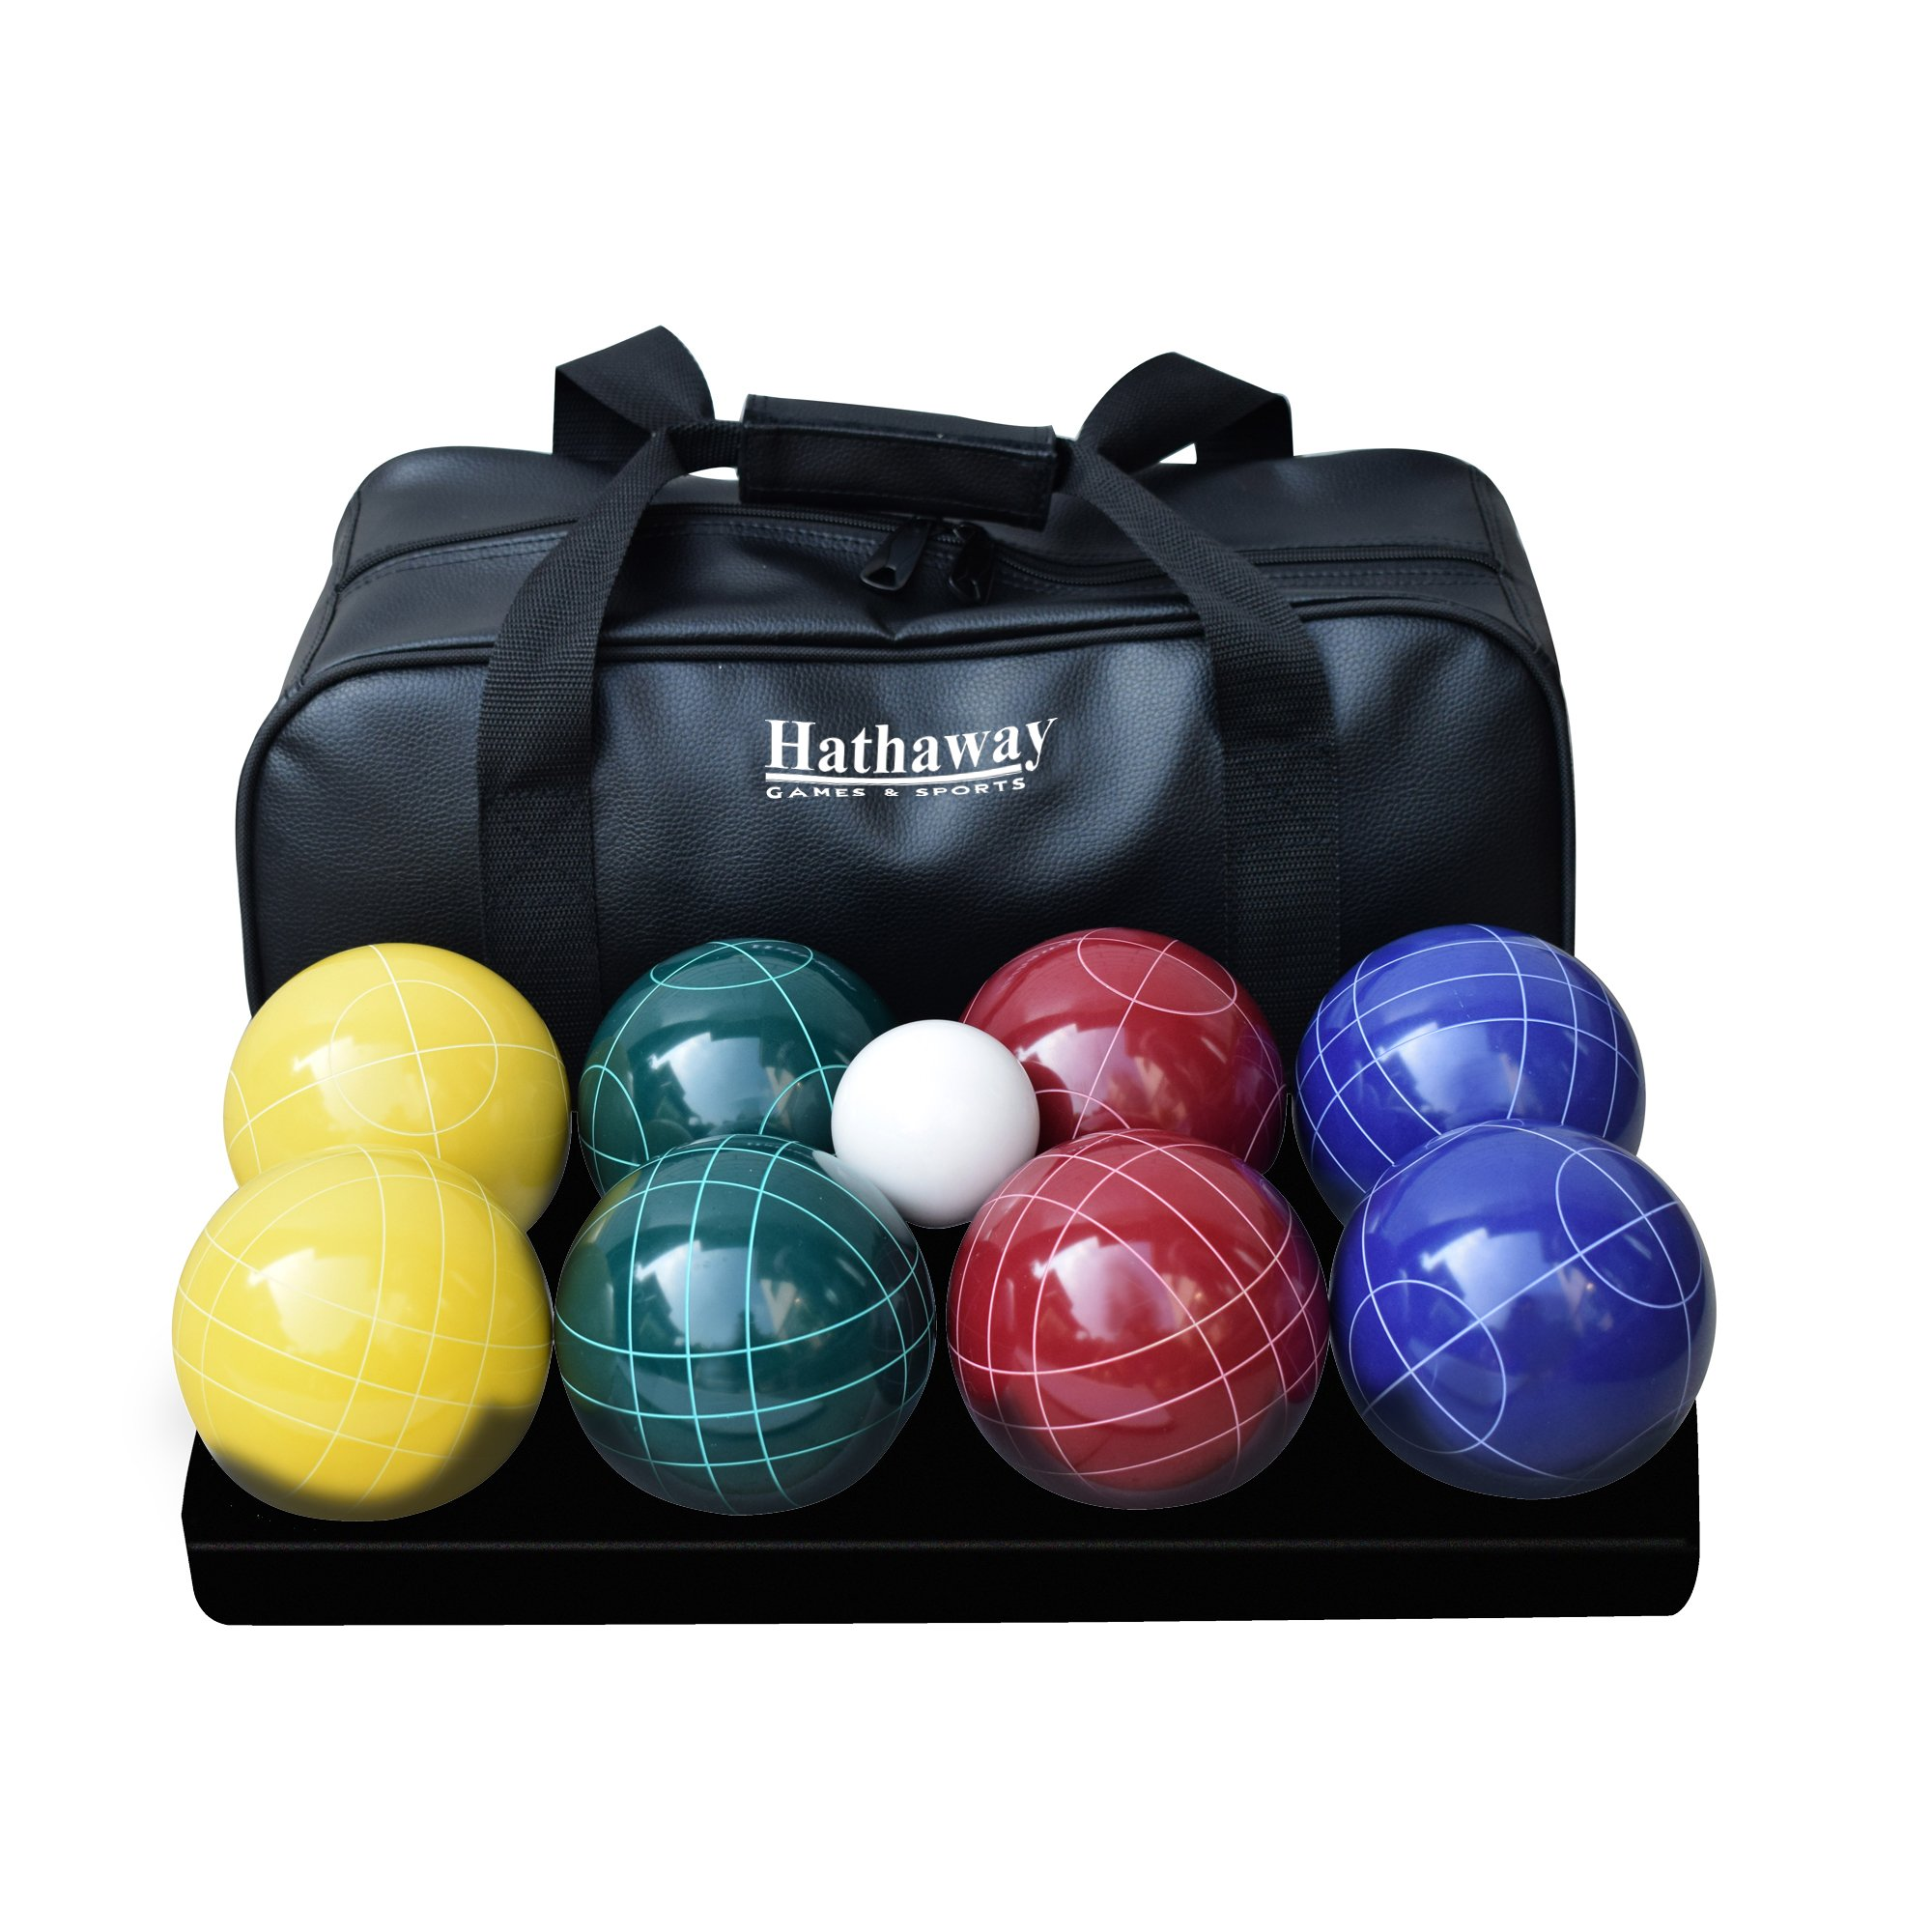 Hathaway Deluxe Bocce Ball Set Multi by Hathaway